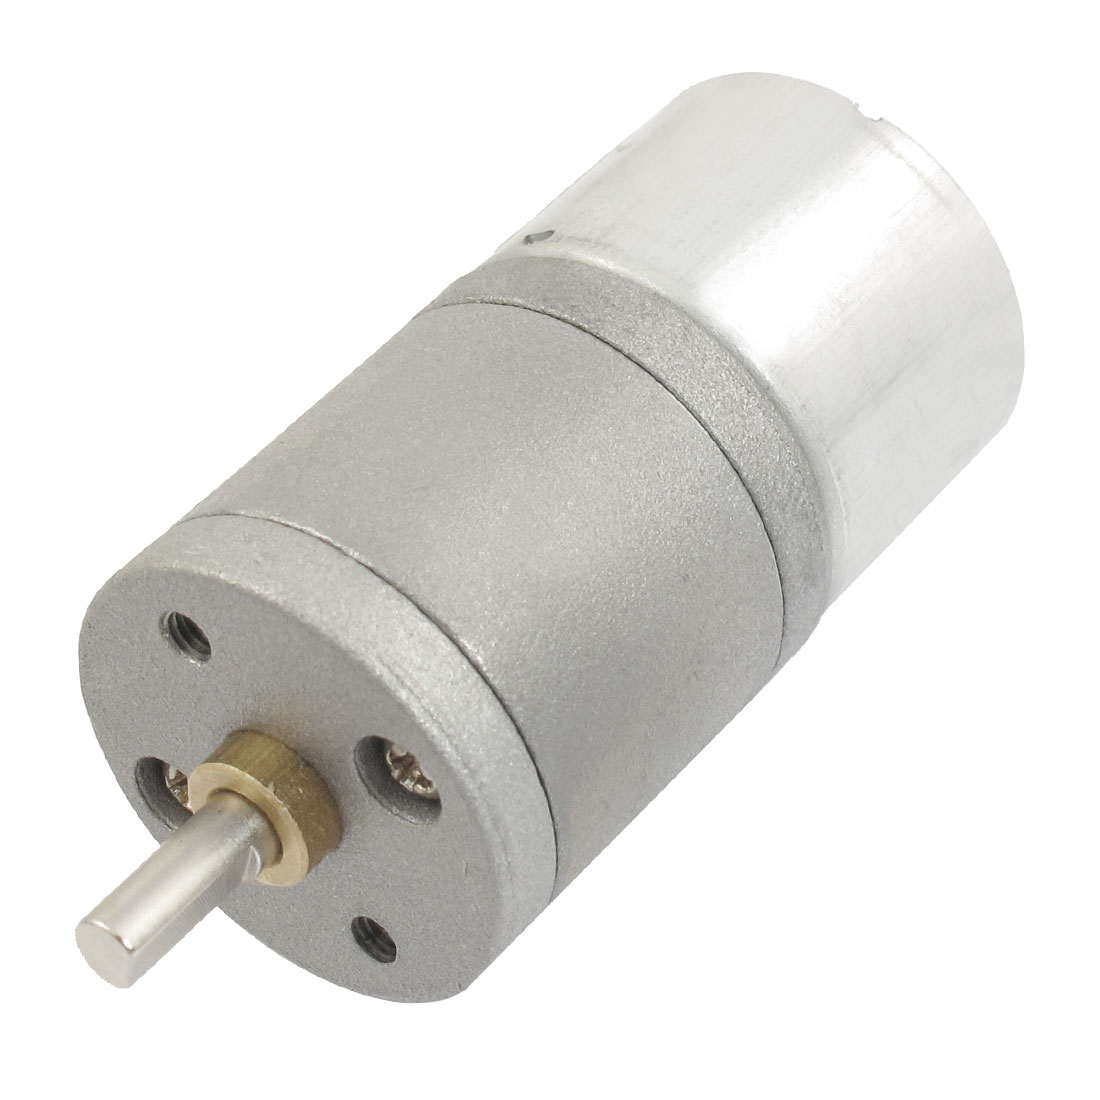 3V 10RPM Speed Reduce Torque Electric DC Geared Gear Box Motor